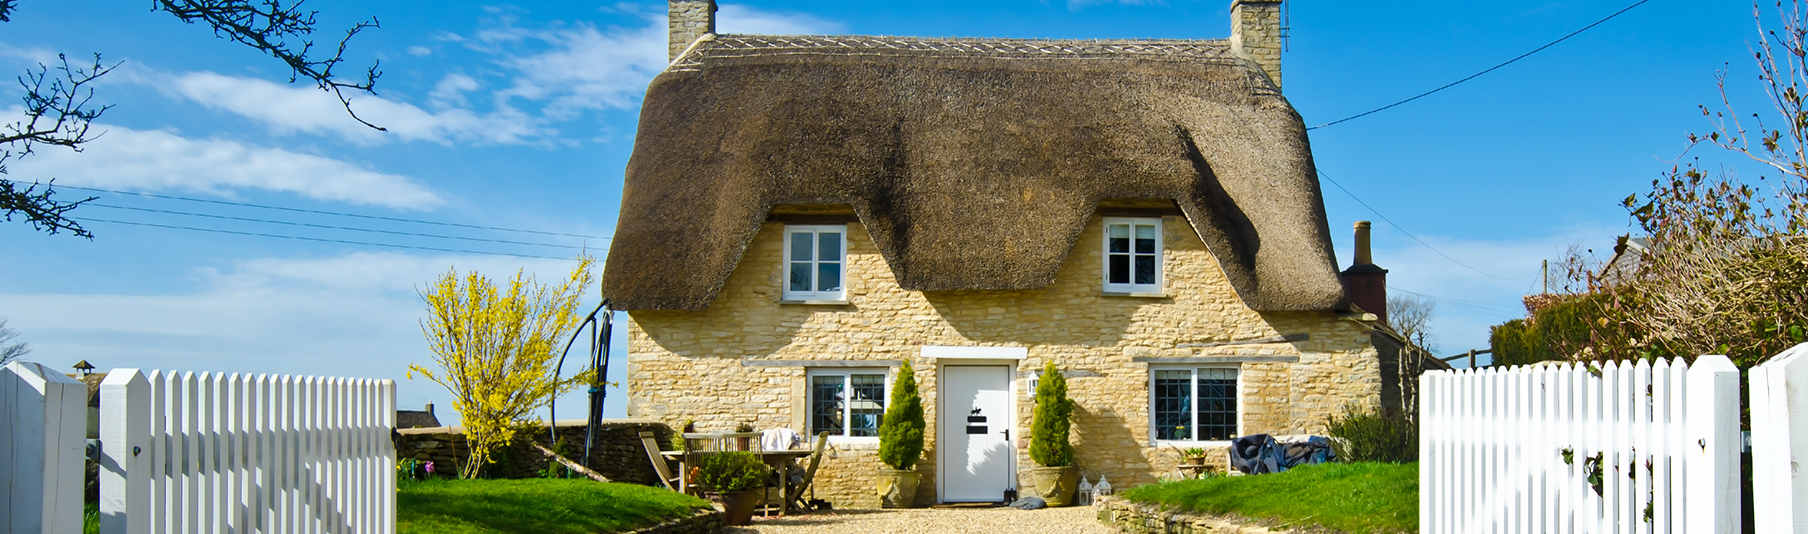 Household Insurance: A picturesque yellow cottage in the countryside